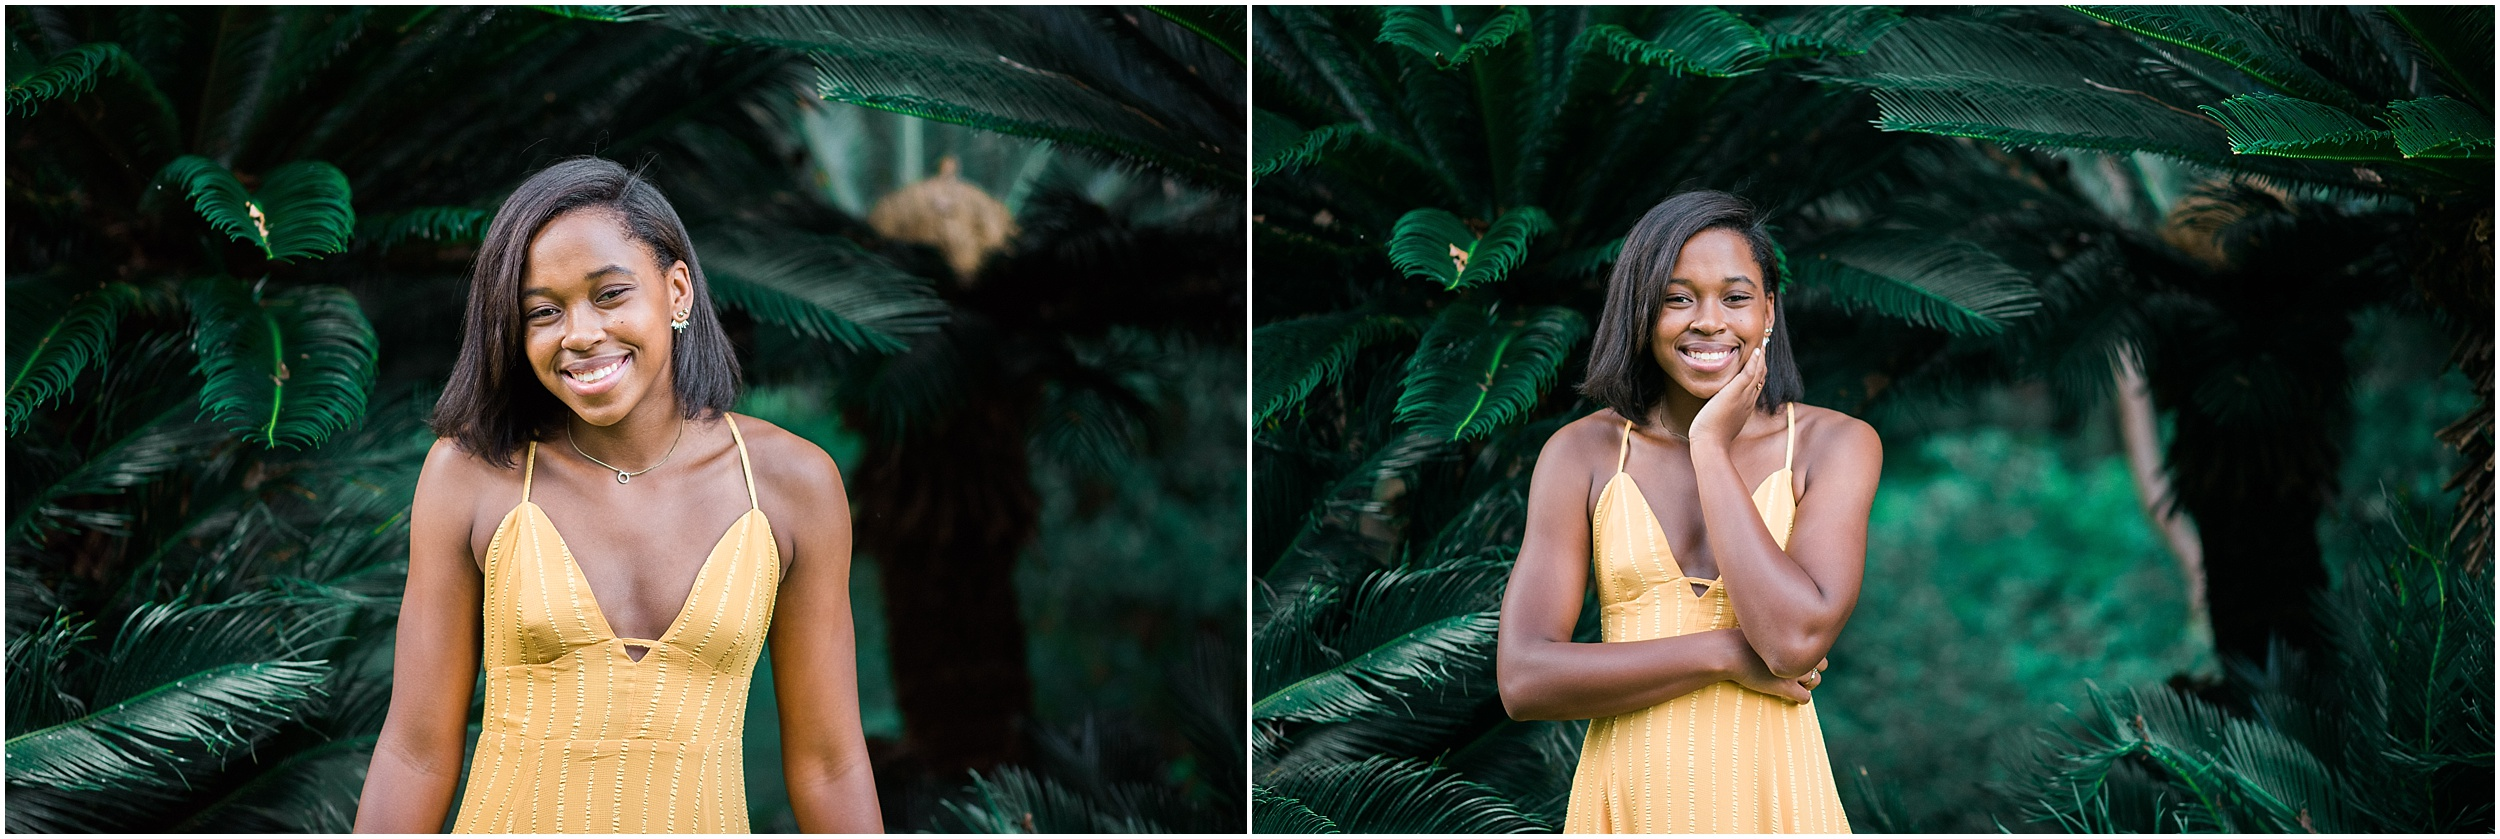 Tallahassee Florida Senior Photographer, Tenejah Senior Session at Maclay Gardens, Tallahassee Florida_0014.jpg